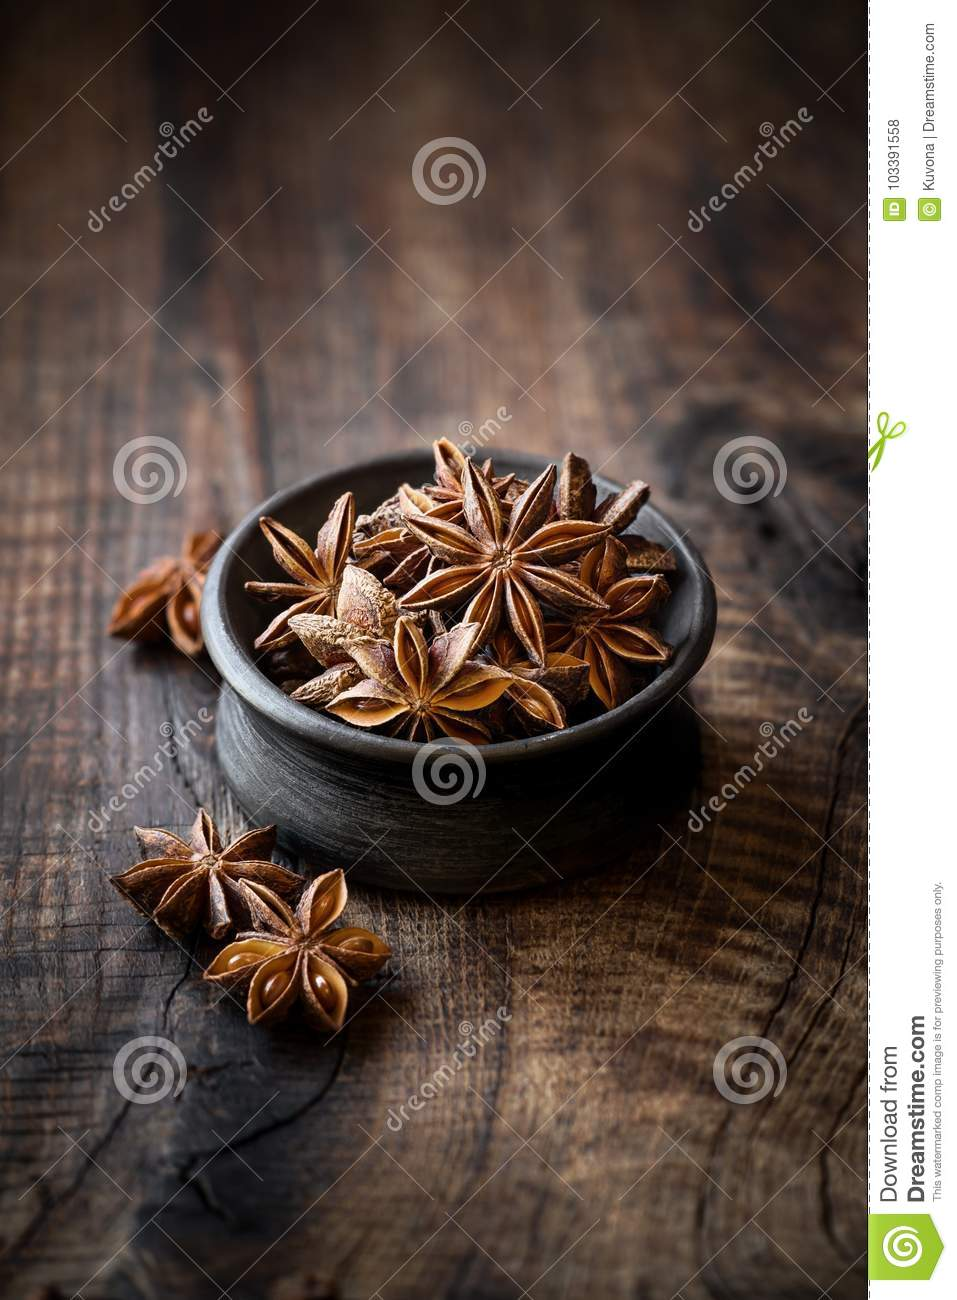 Star Anise Or Aniseed Closeup On Dark Rustic Table Stock